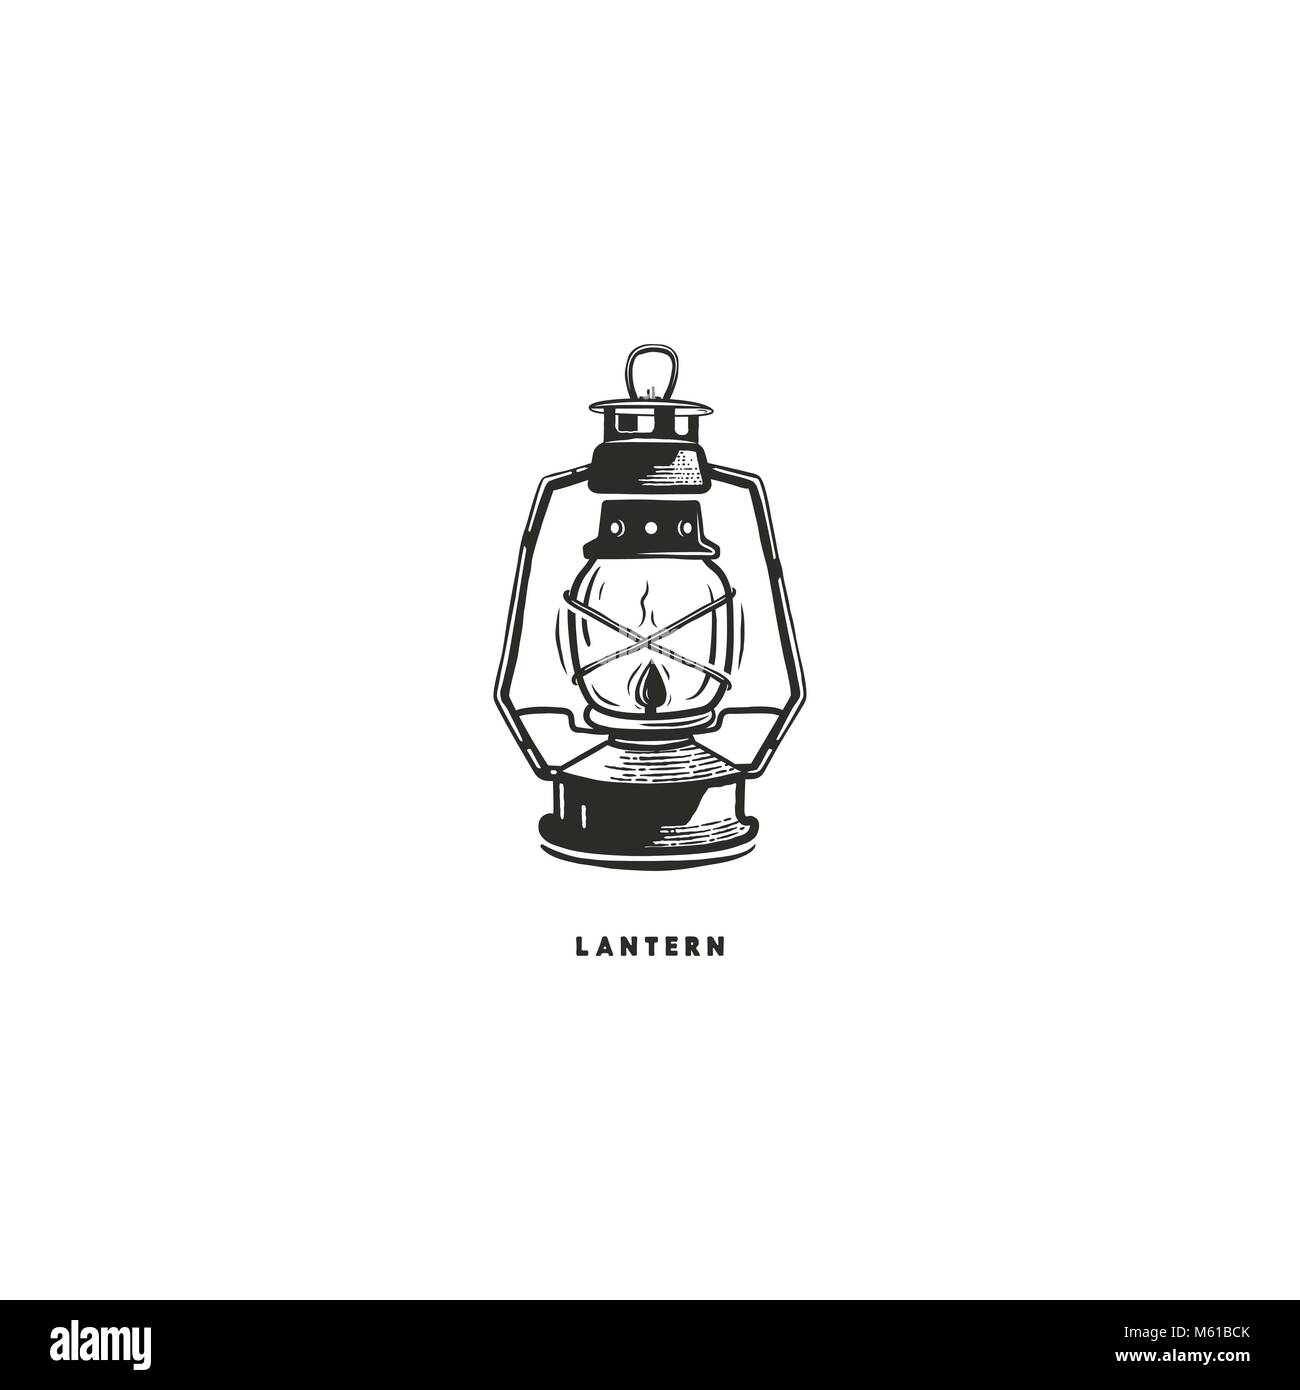 Vintage hand drawn lantern concept. Perfect for logo design, badge, camping labels. Monochrome. Symbol for outdoor - Stock Vector